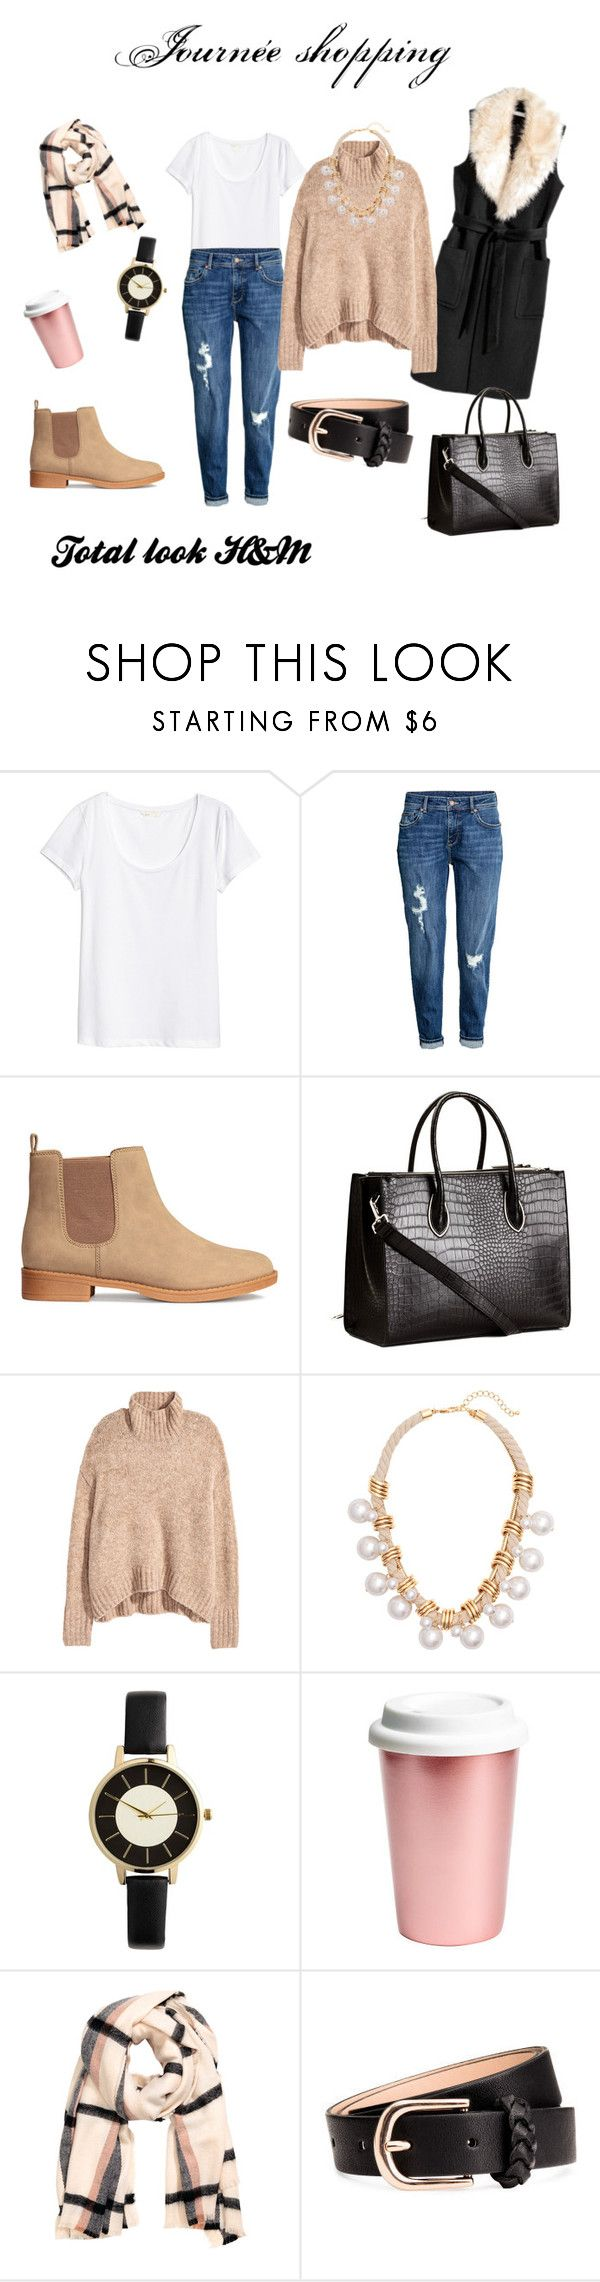 """""""Shopping avec total look H&M"""" by stephmargot ❤ liked on Polyvore featuring H&M, look and hijab"""